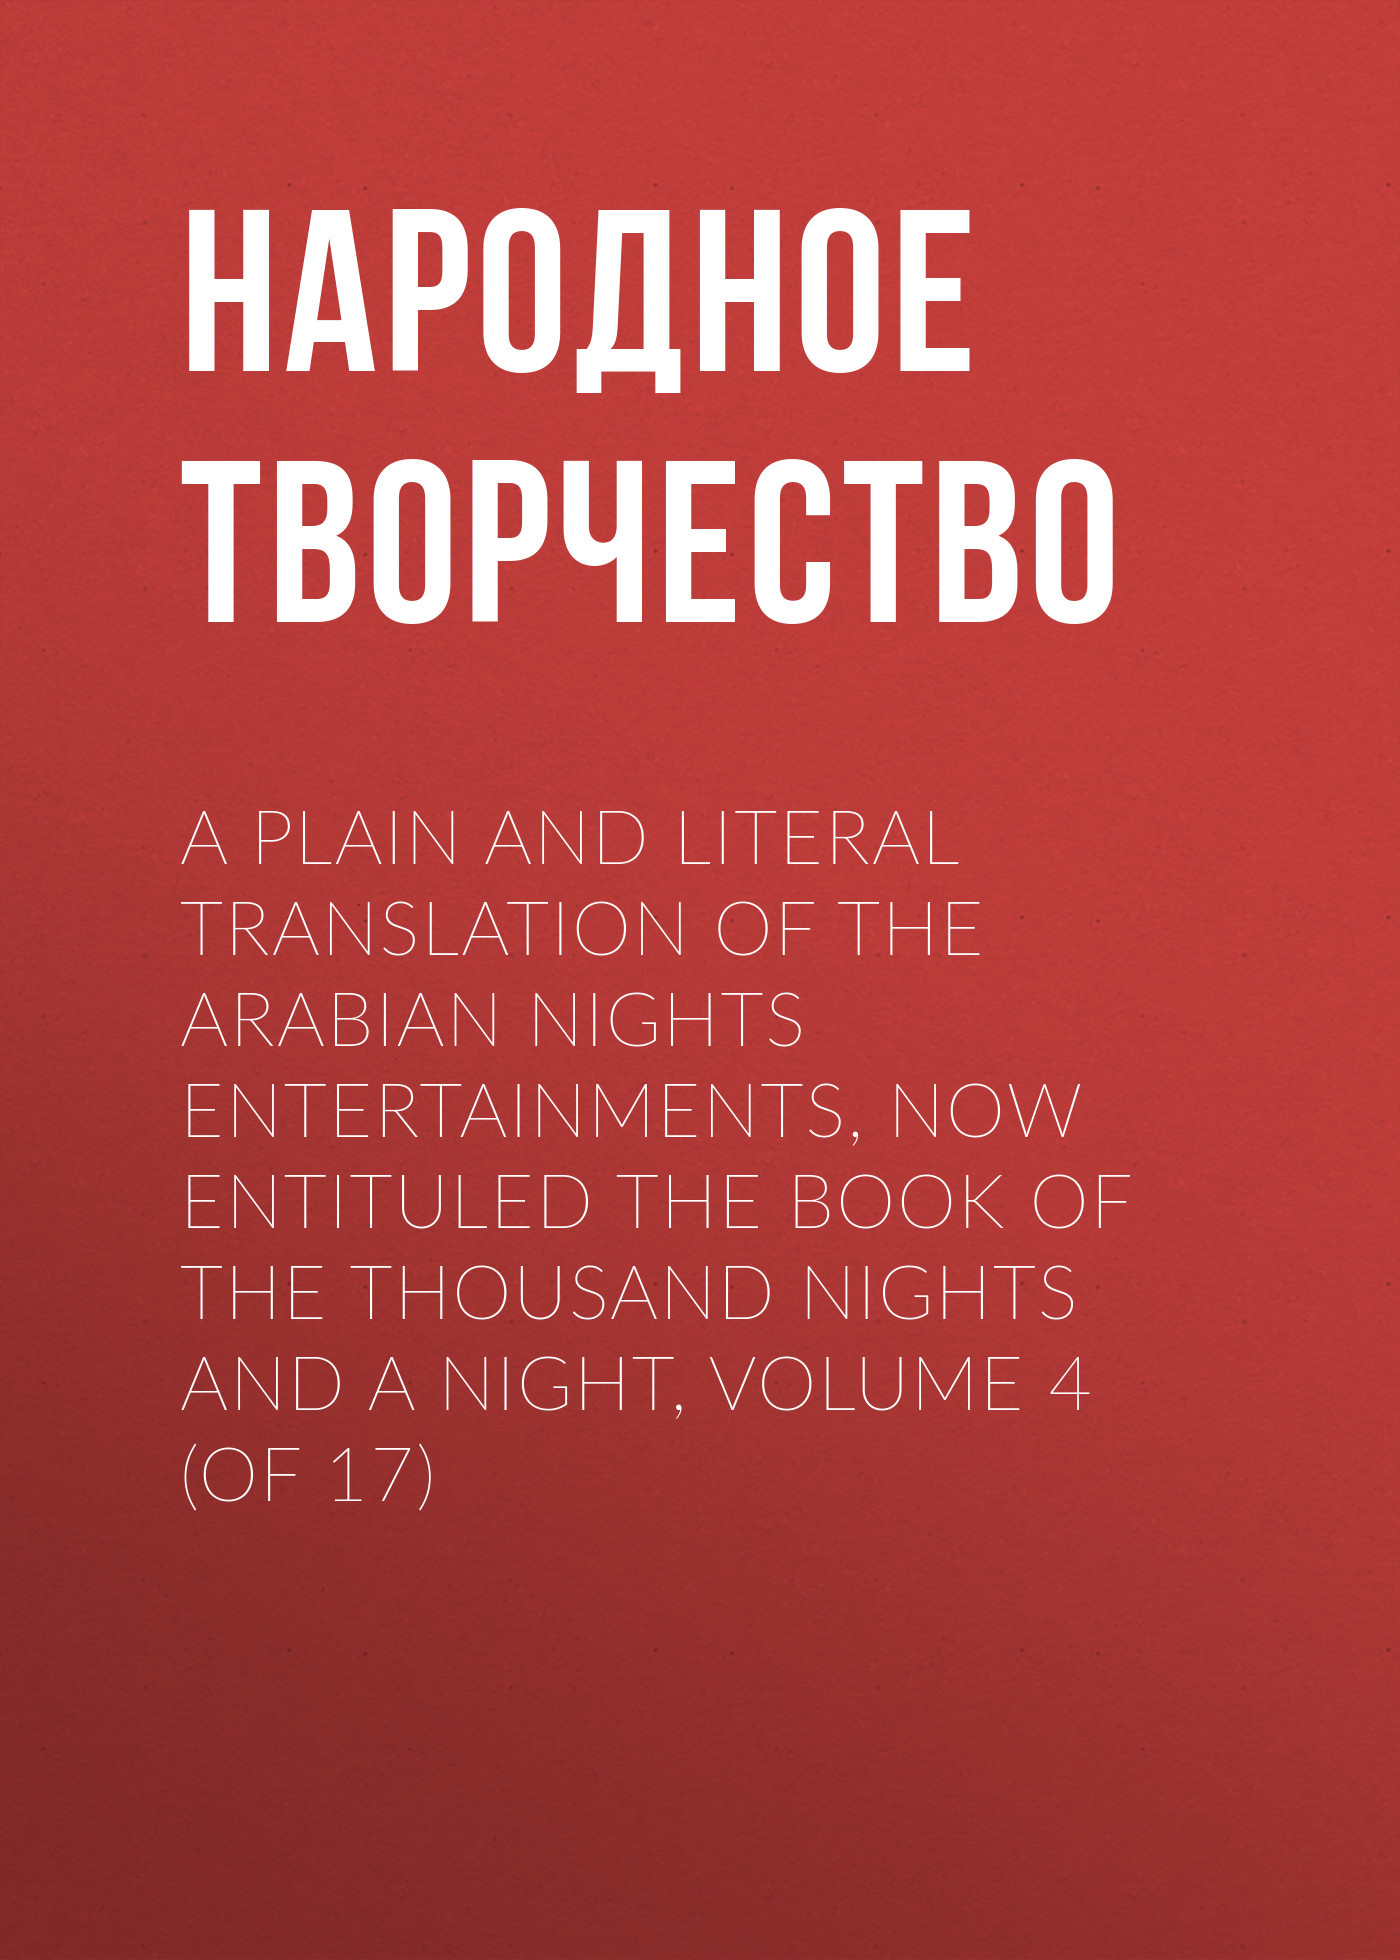 Народное творчество A plain and literal translation of the Arabian nights entertainments, now entituled The Book of the Thousand Nights and a Night, Volume 4 (of 17)